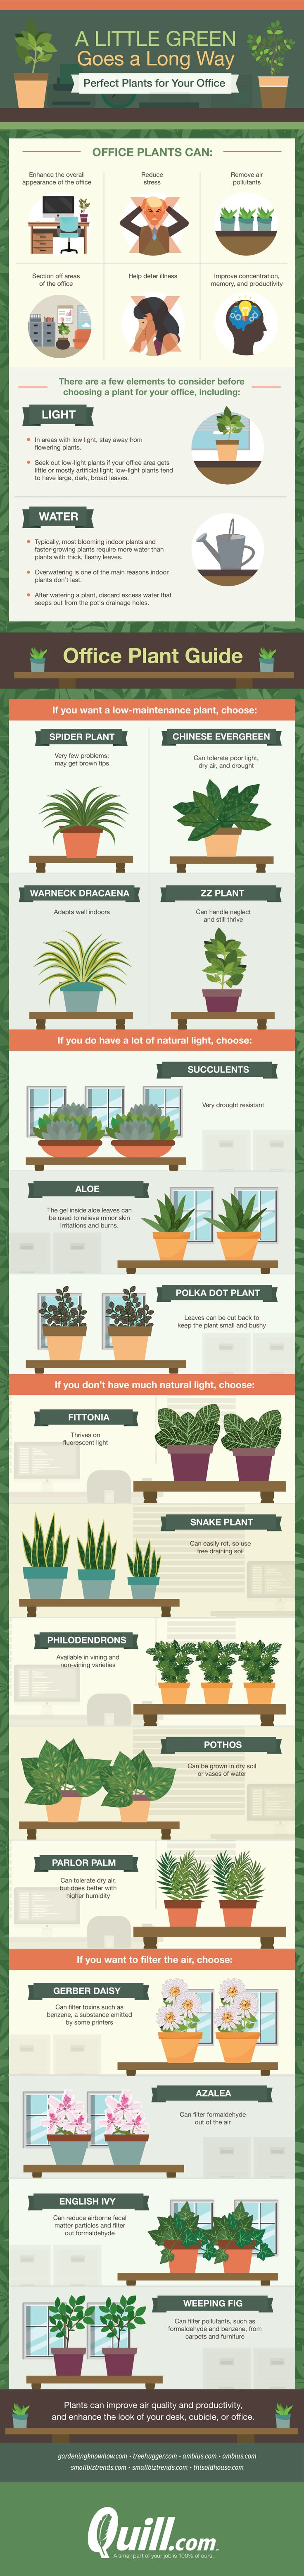 A Little Green Goes A Long Way: Plants Perfect For Your Office #Infographic